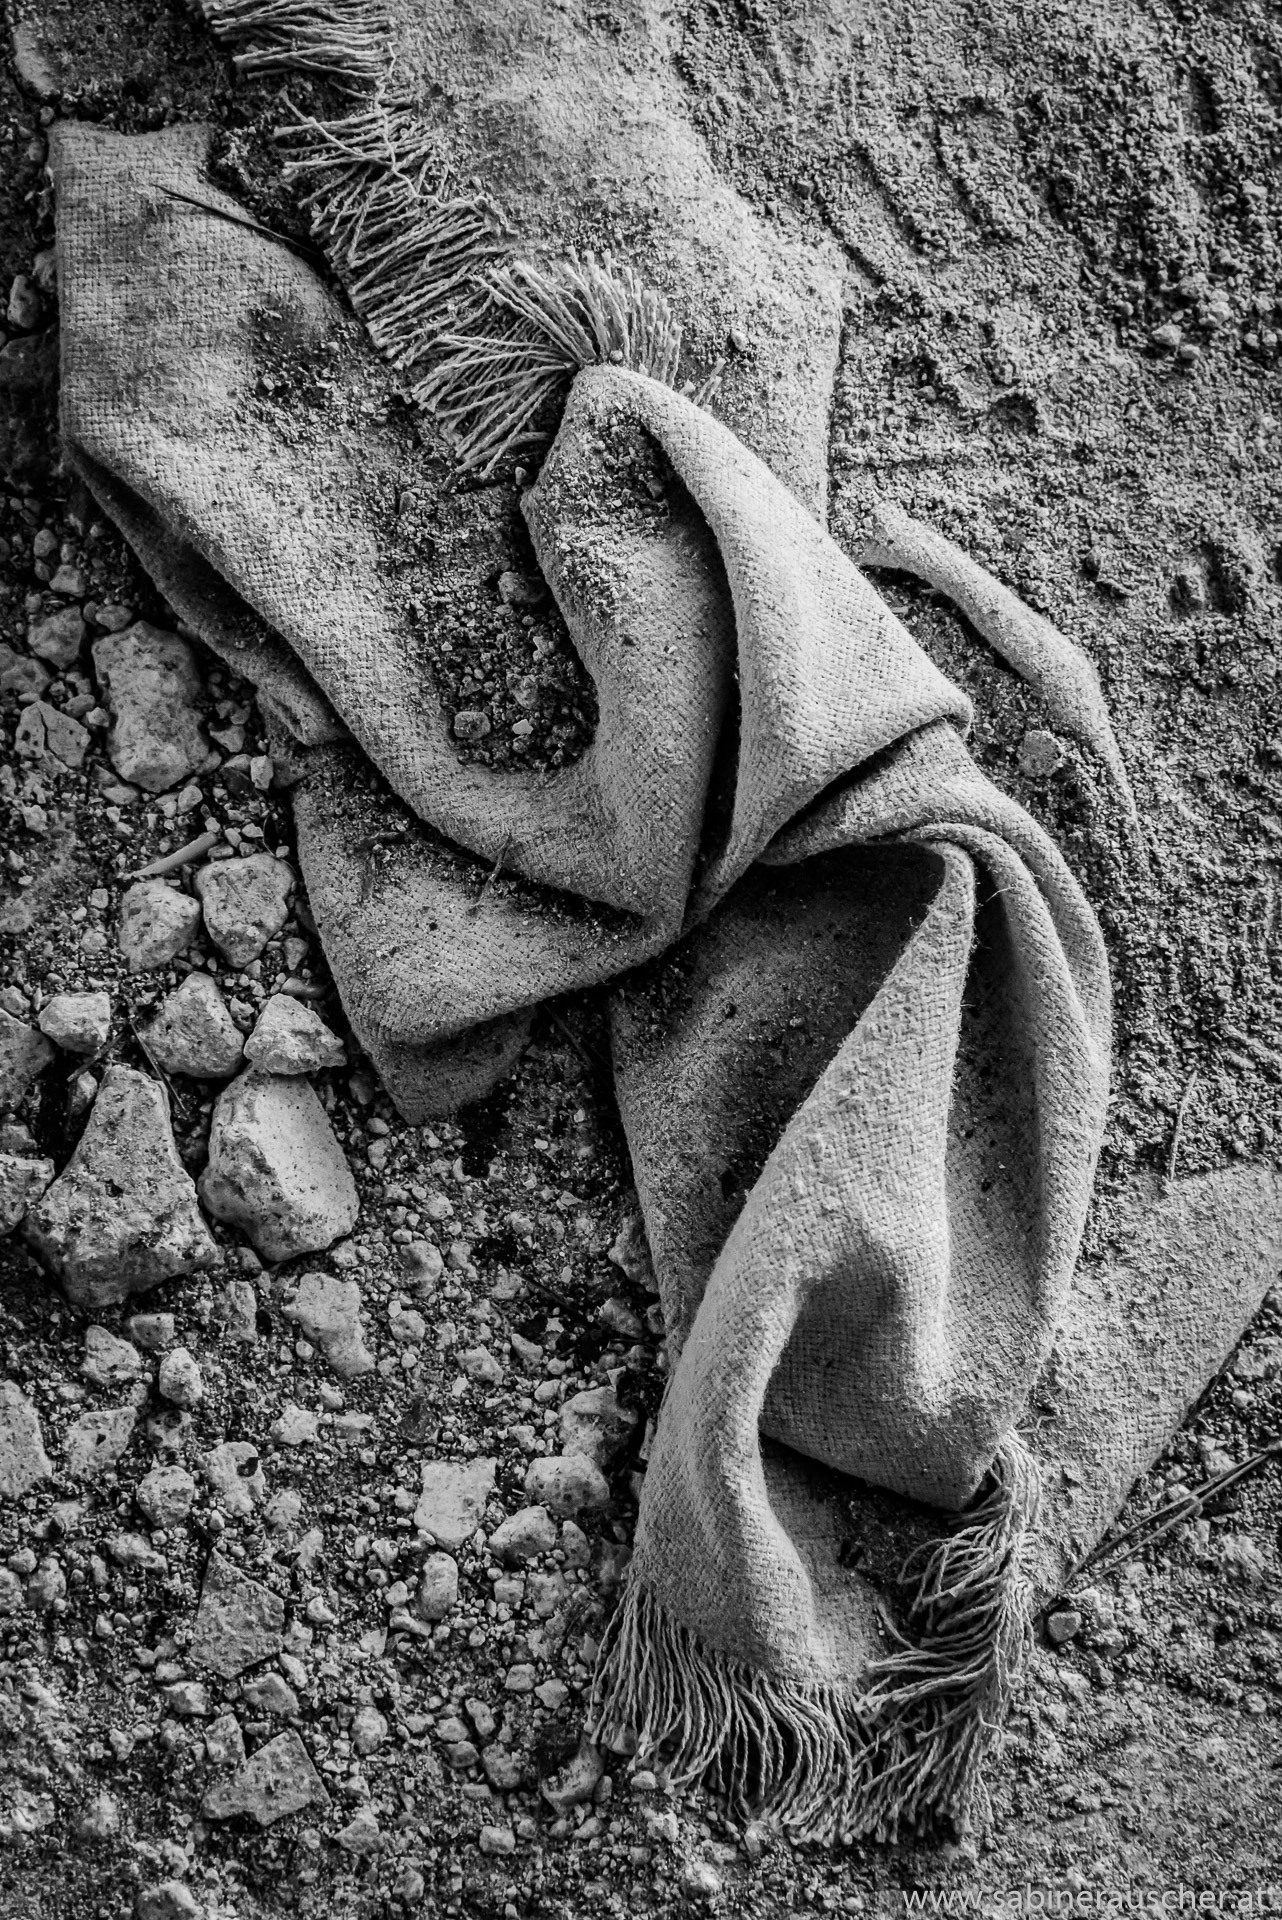 Cloth in the dirt of a lost place on Mallorca | Tuch im Schmutz eines Lost Place auf Mallorca